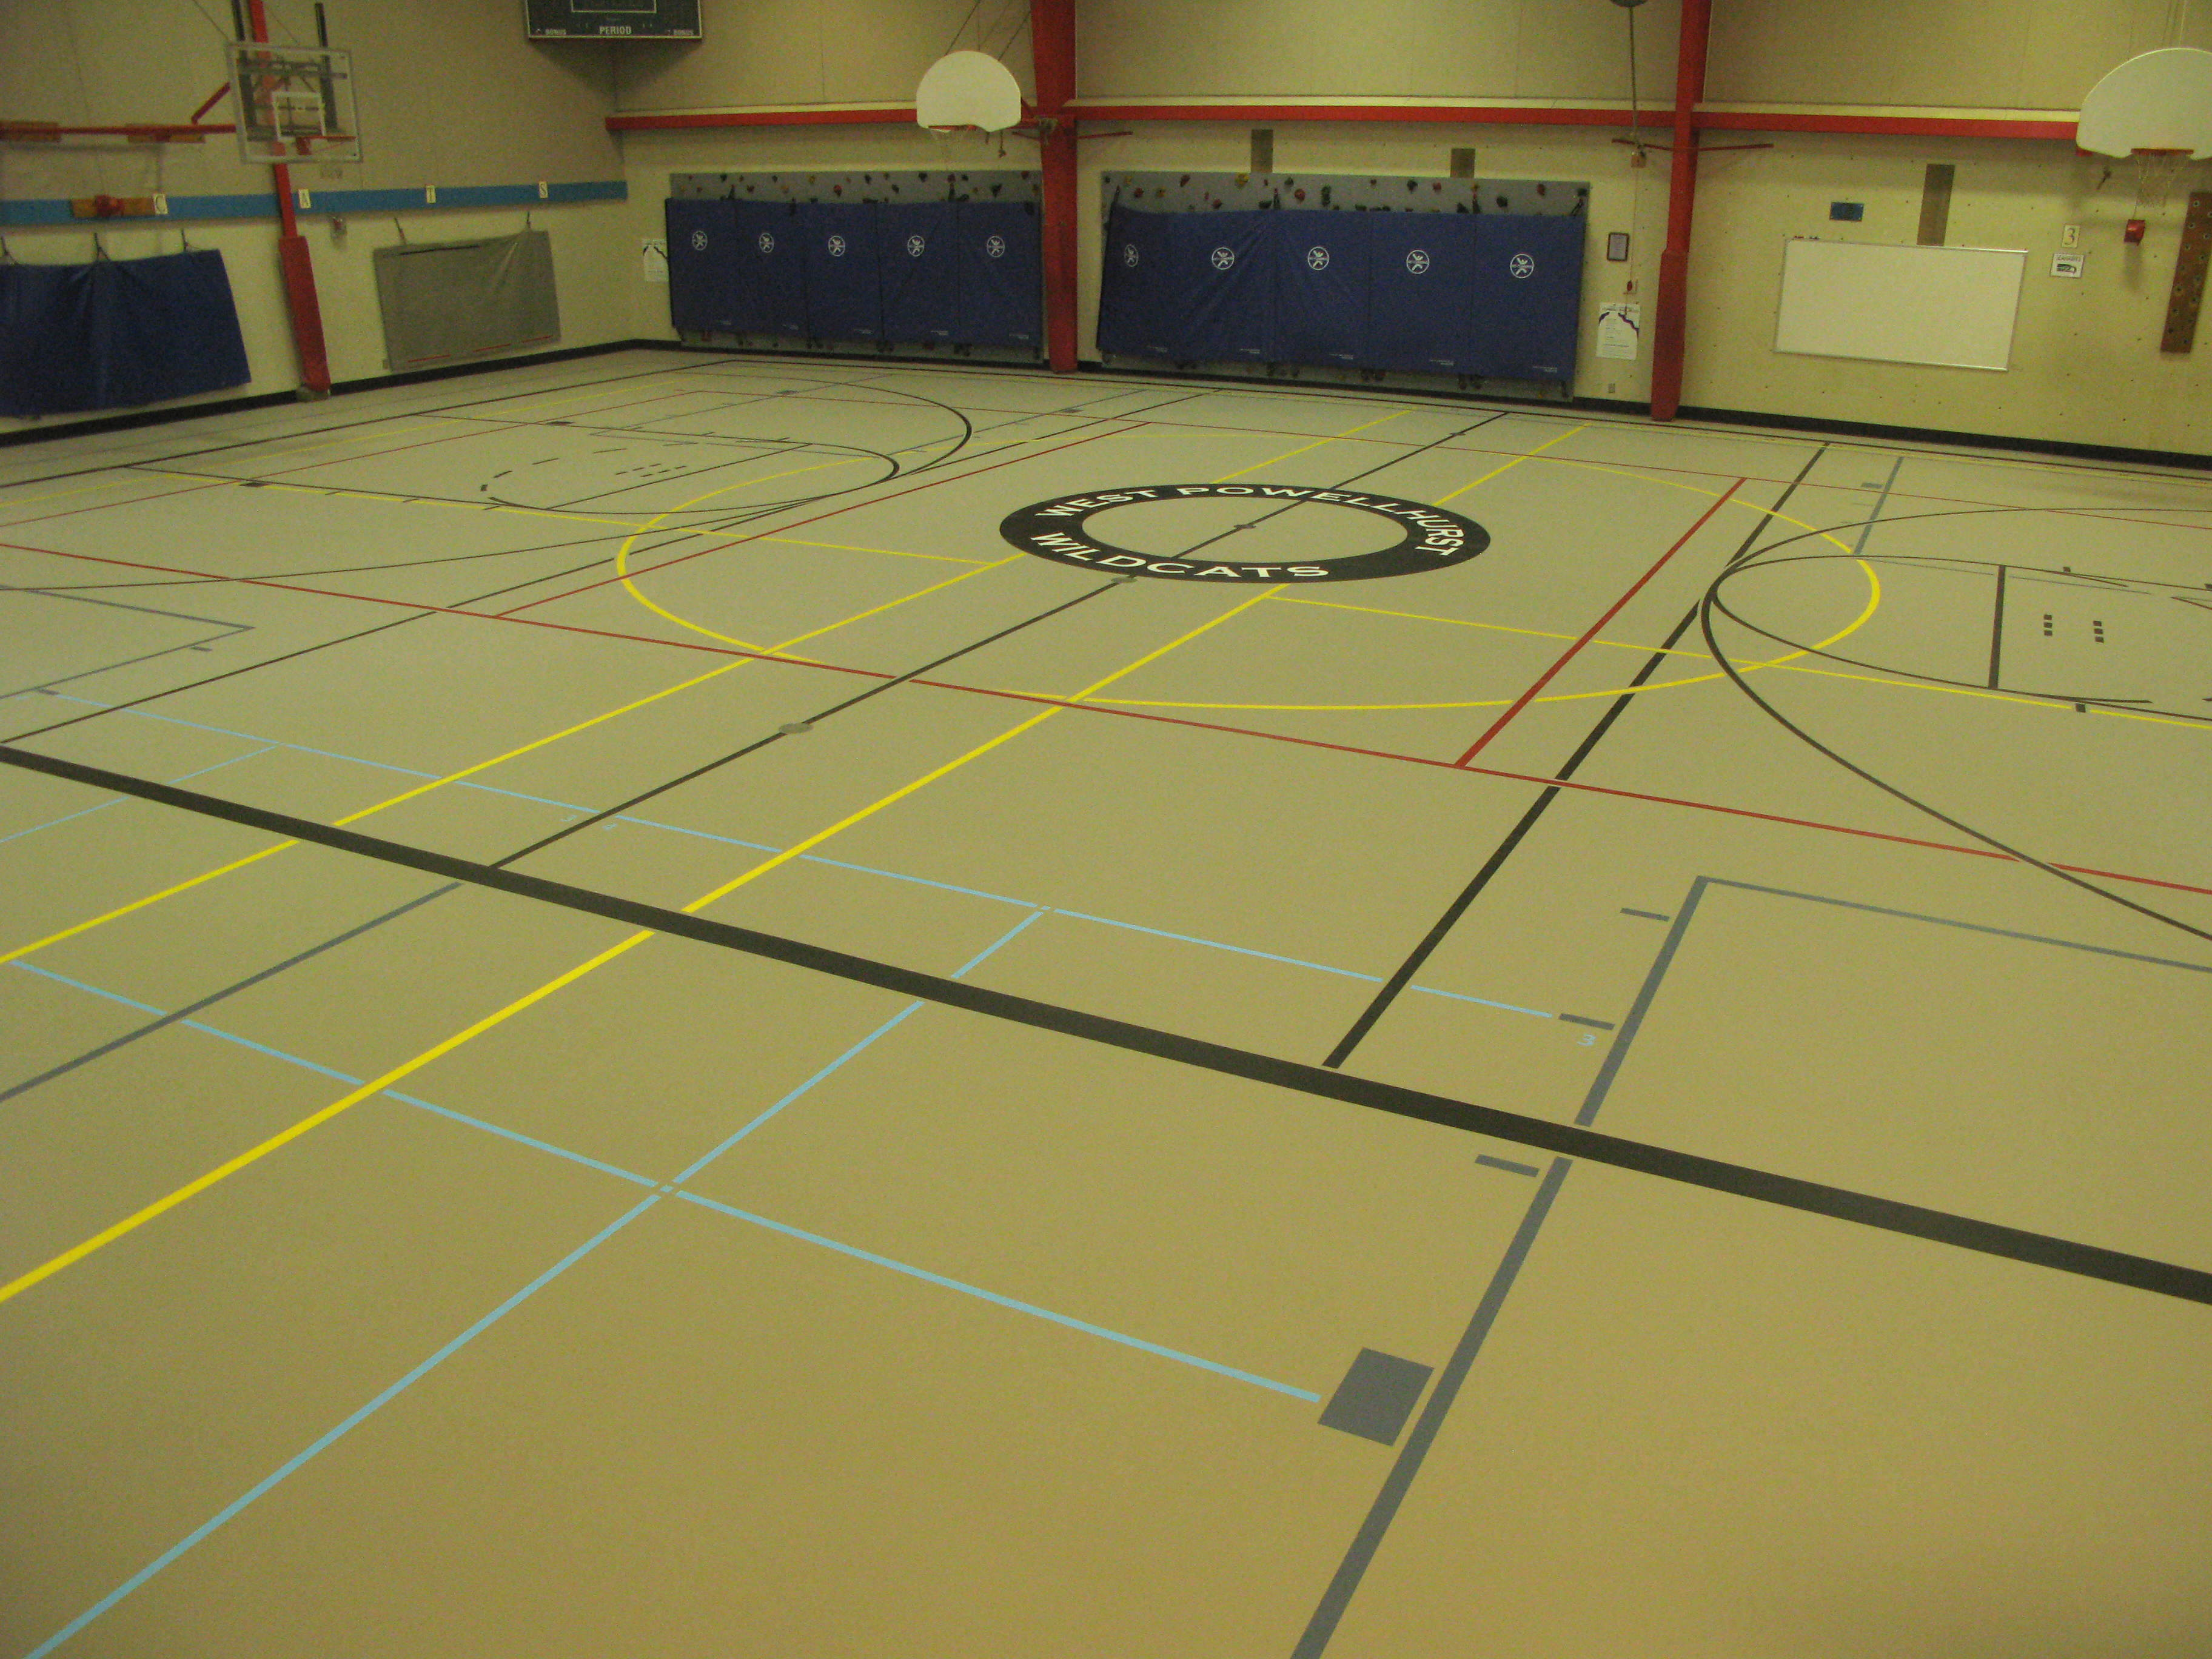 cladding and pin school floor gym pinterest wall old